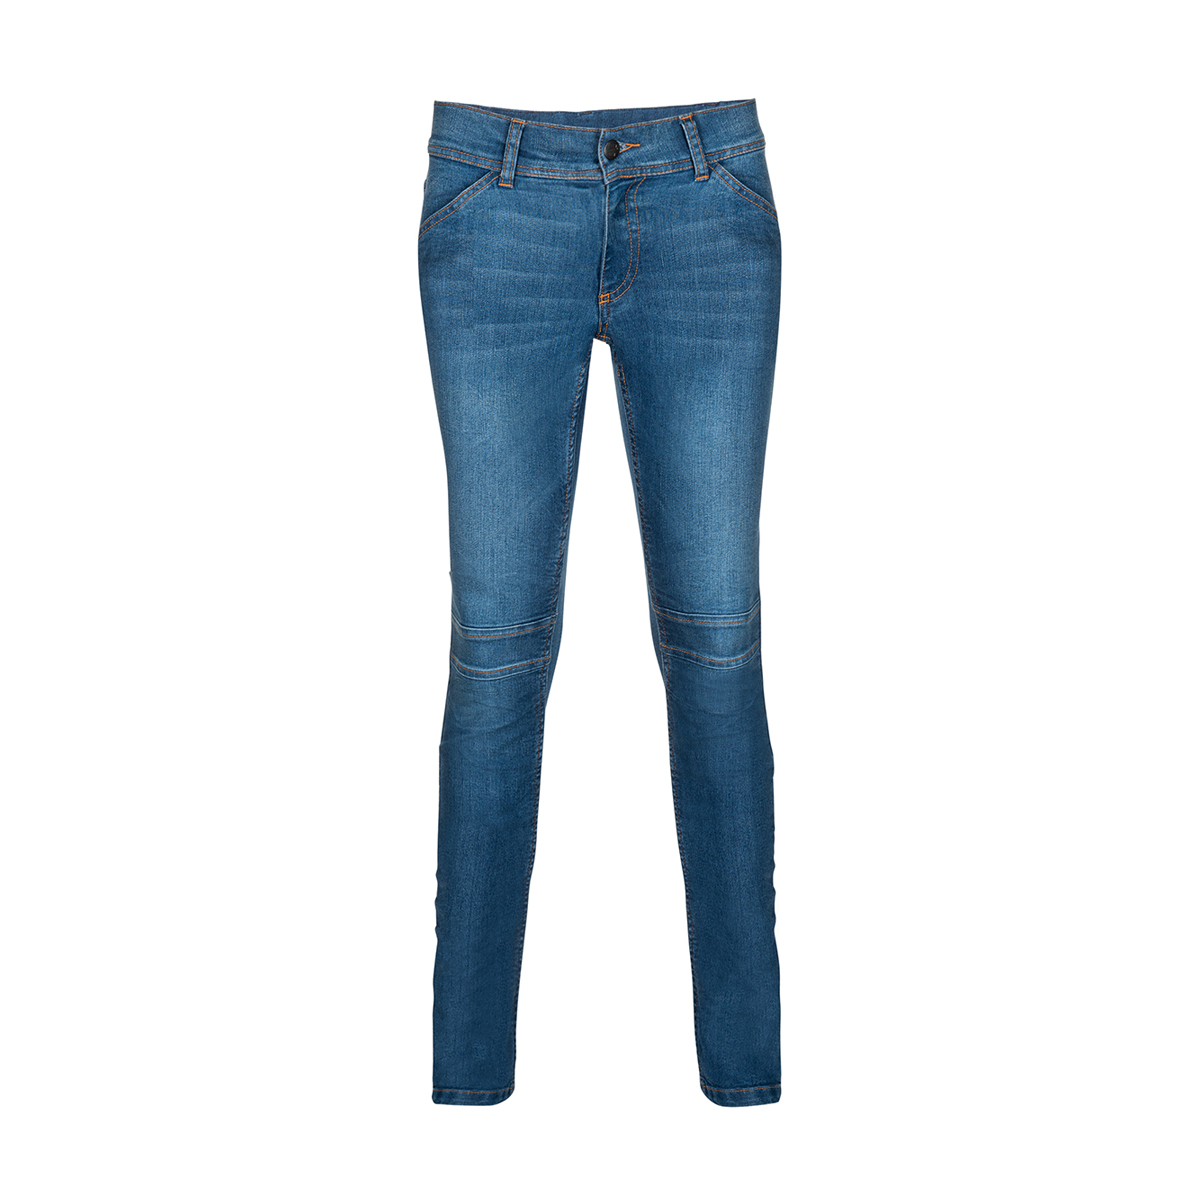 Shop trendy jegging only on optimizings.cf! We have all the jegging styles you need in all shapes and sizes for the most flattering fit.